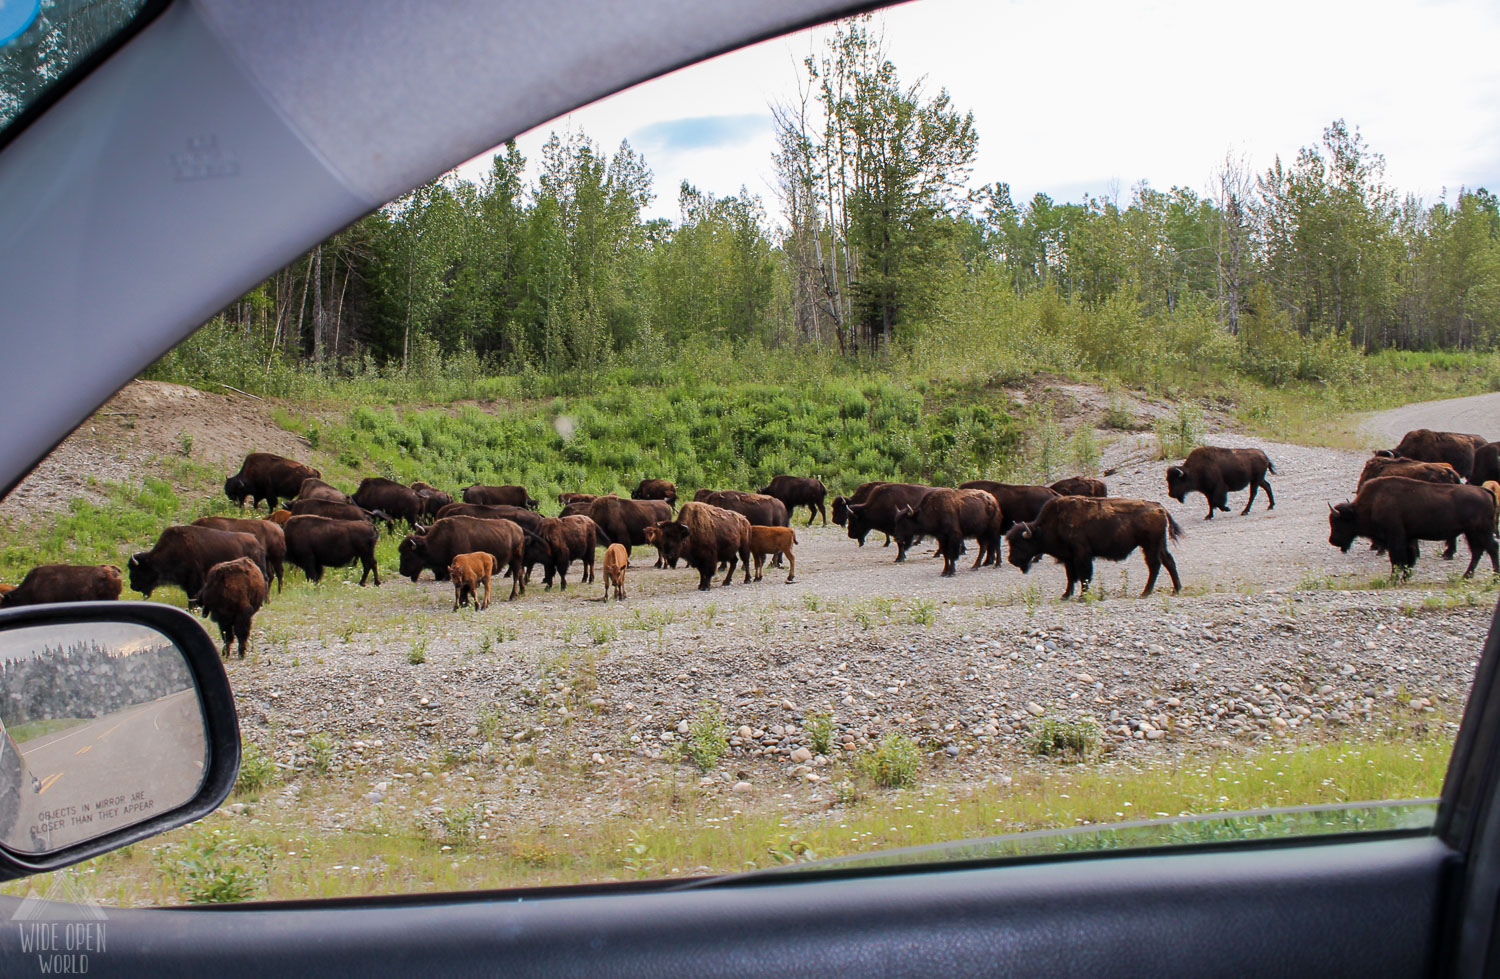 Countless amounts of bison on the drive